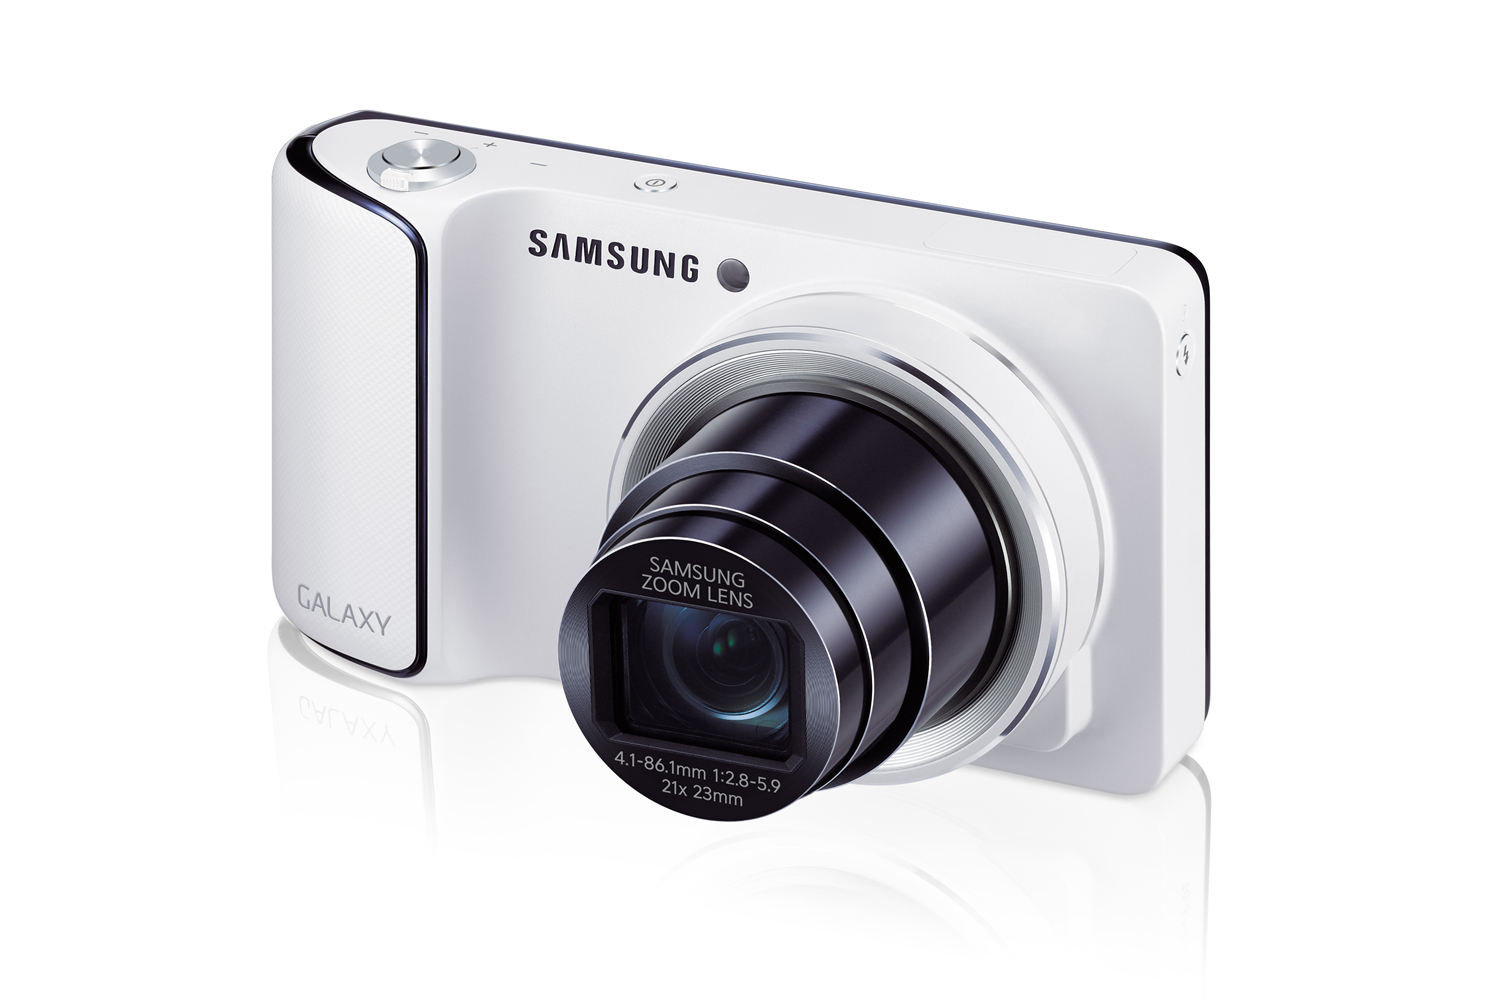 New York trips up for grabs in Samsung shoot-out